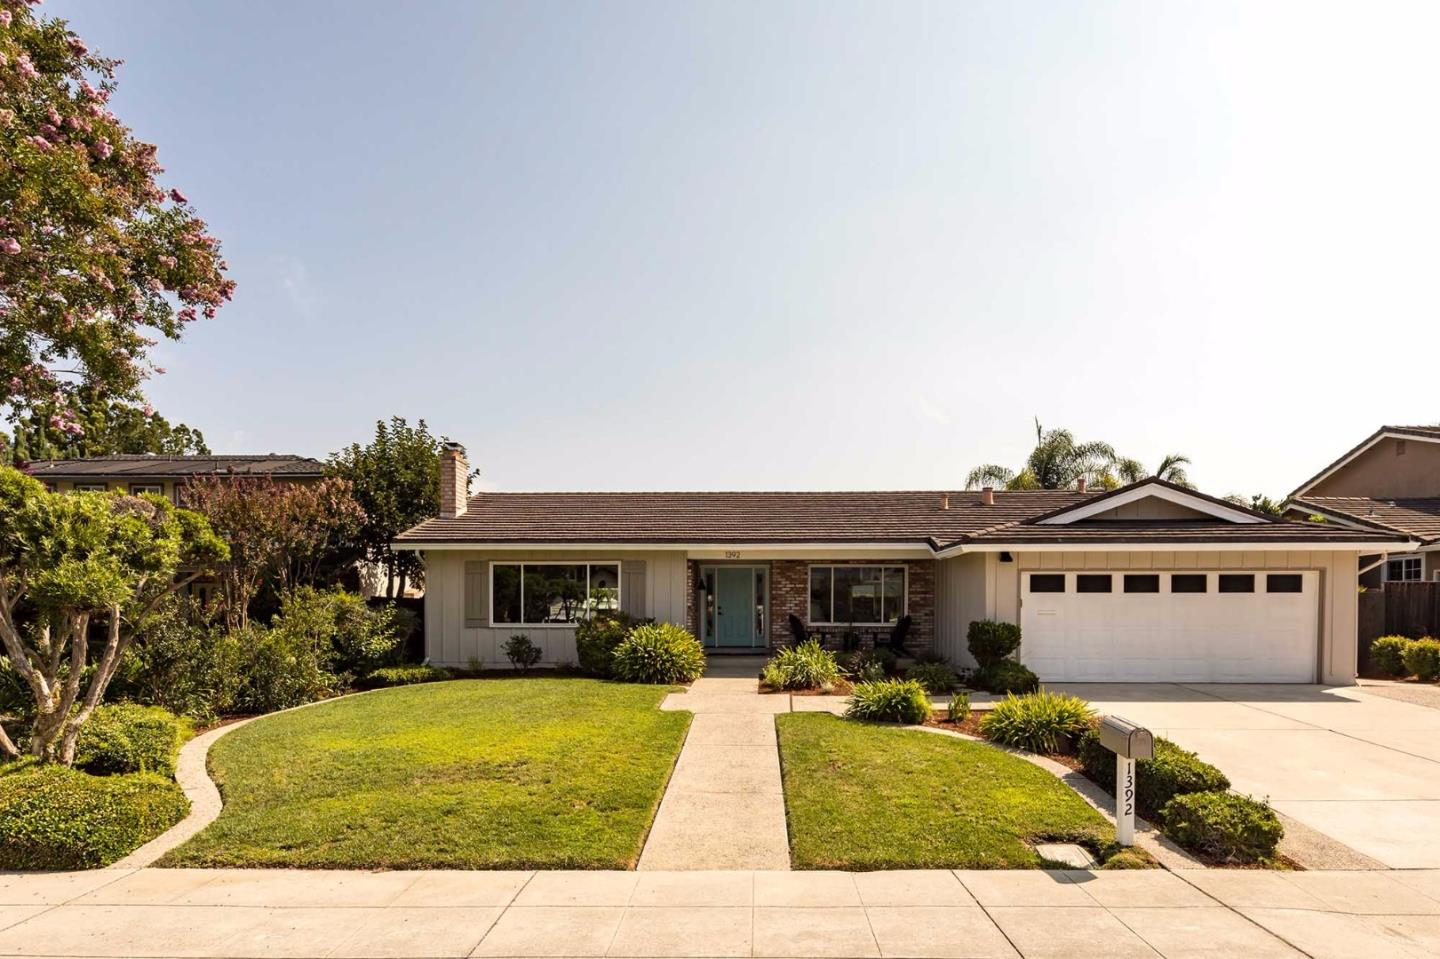 Single Family Home for Sale at 1392 Bedford Avenue Sunnyvale, California 94087 United States